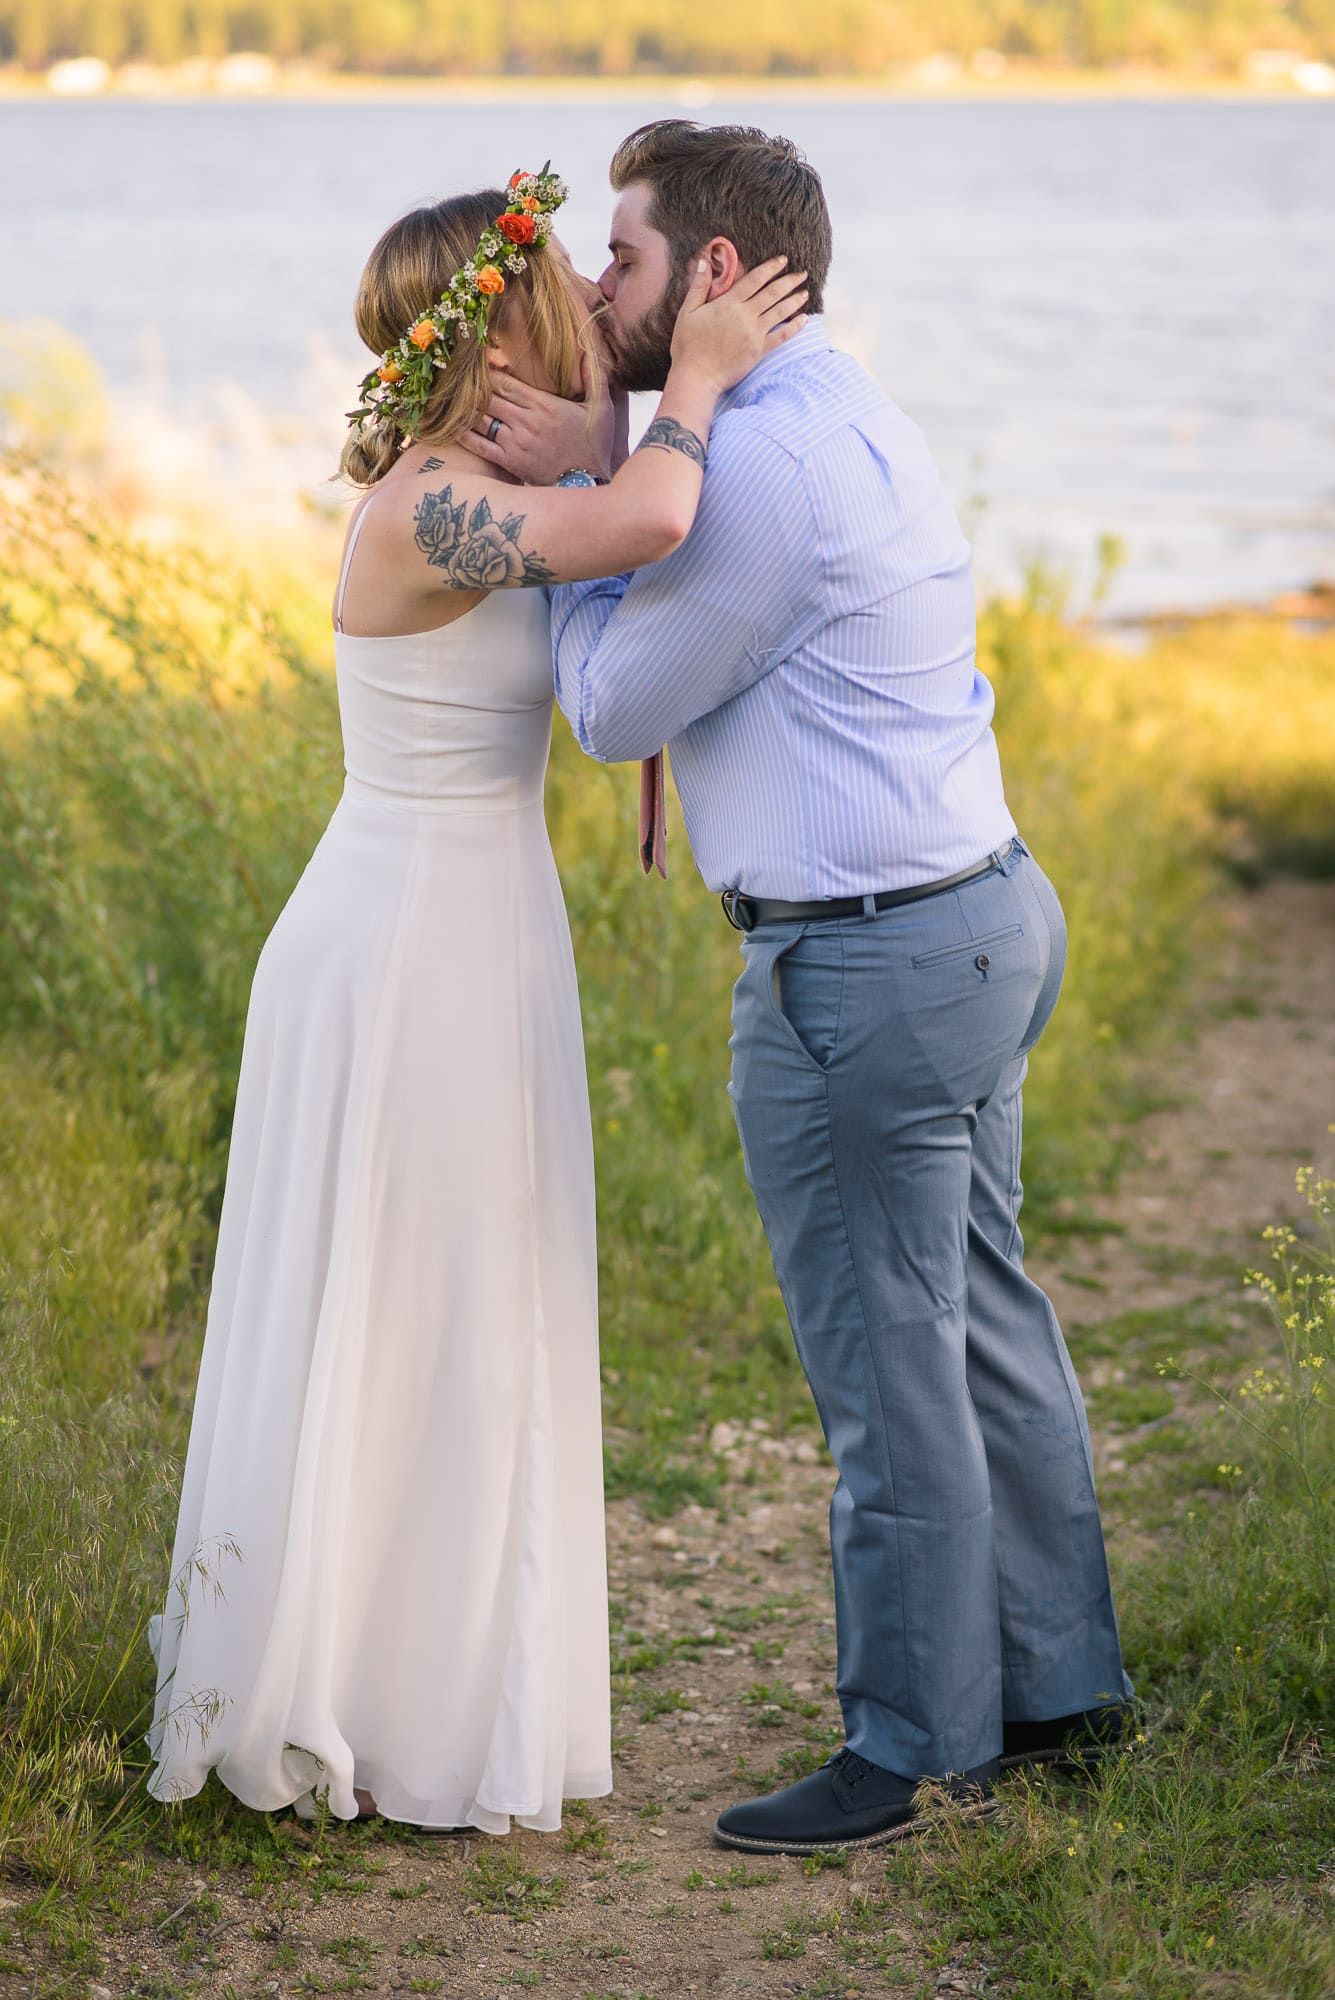 035_Alan_and_Heidi_Kensey_Josh_Big_Bear_Elopement